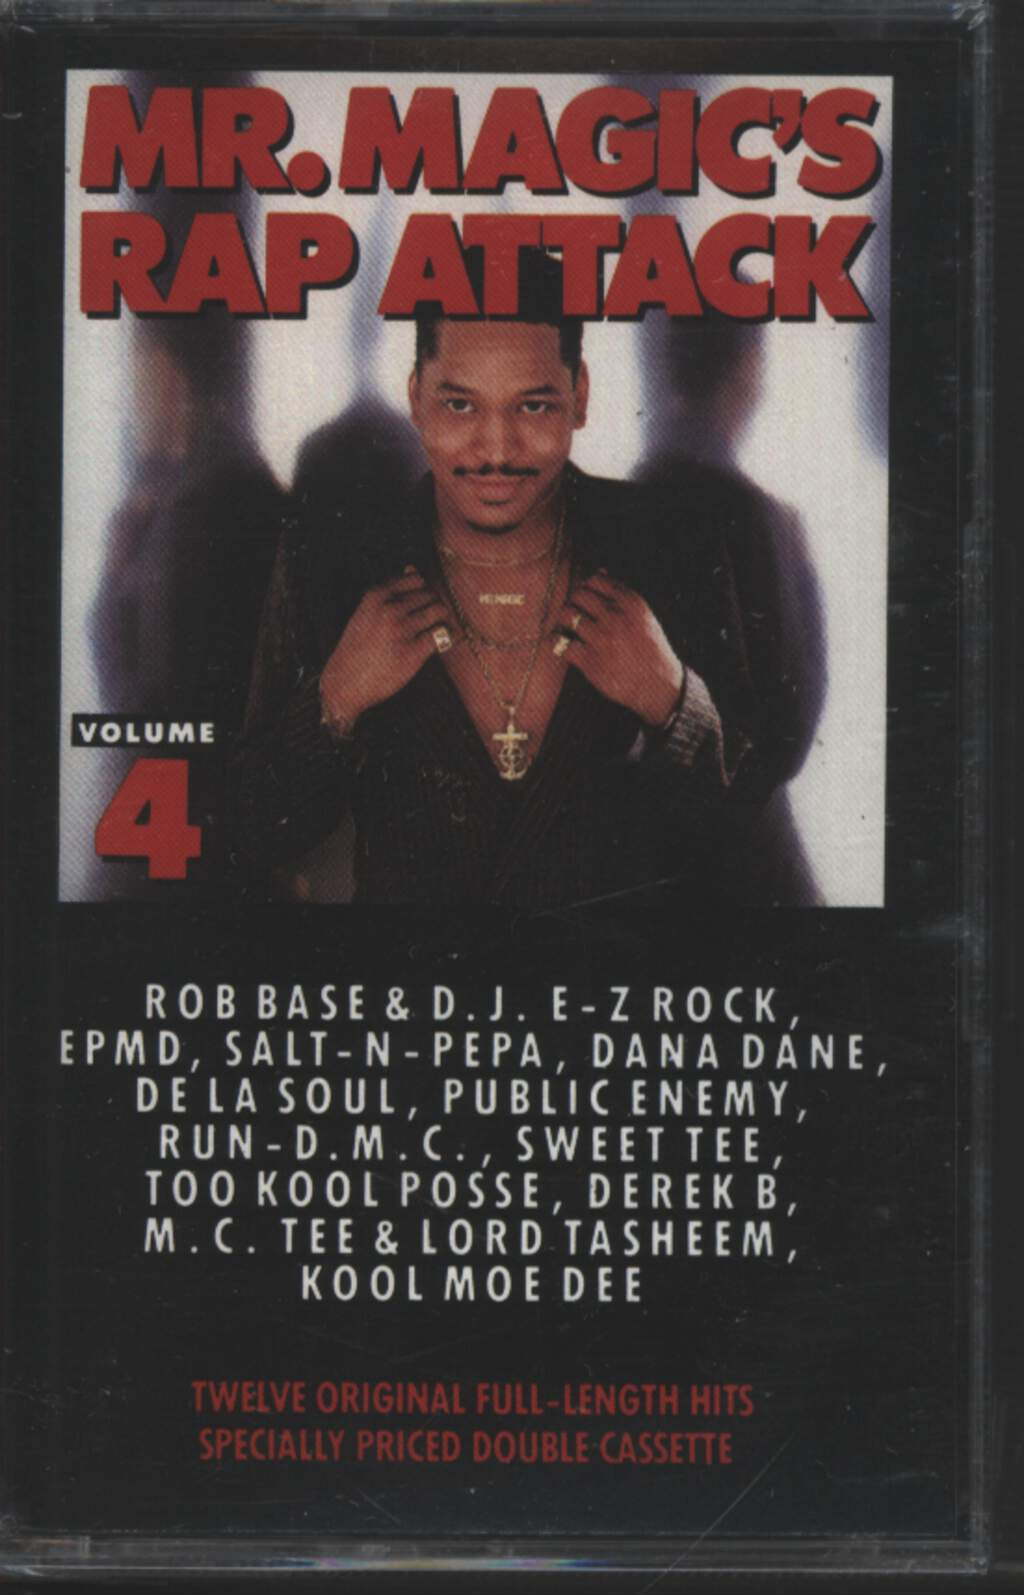 Mr. Magic: Mr. Magic's Rap Attack Volume 4, Tape